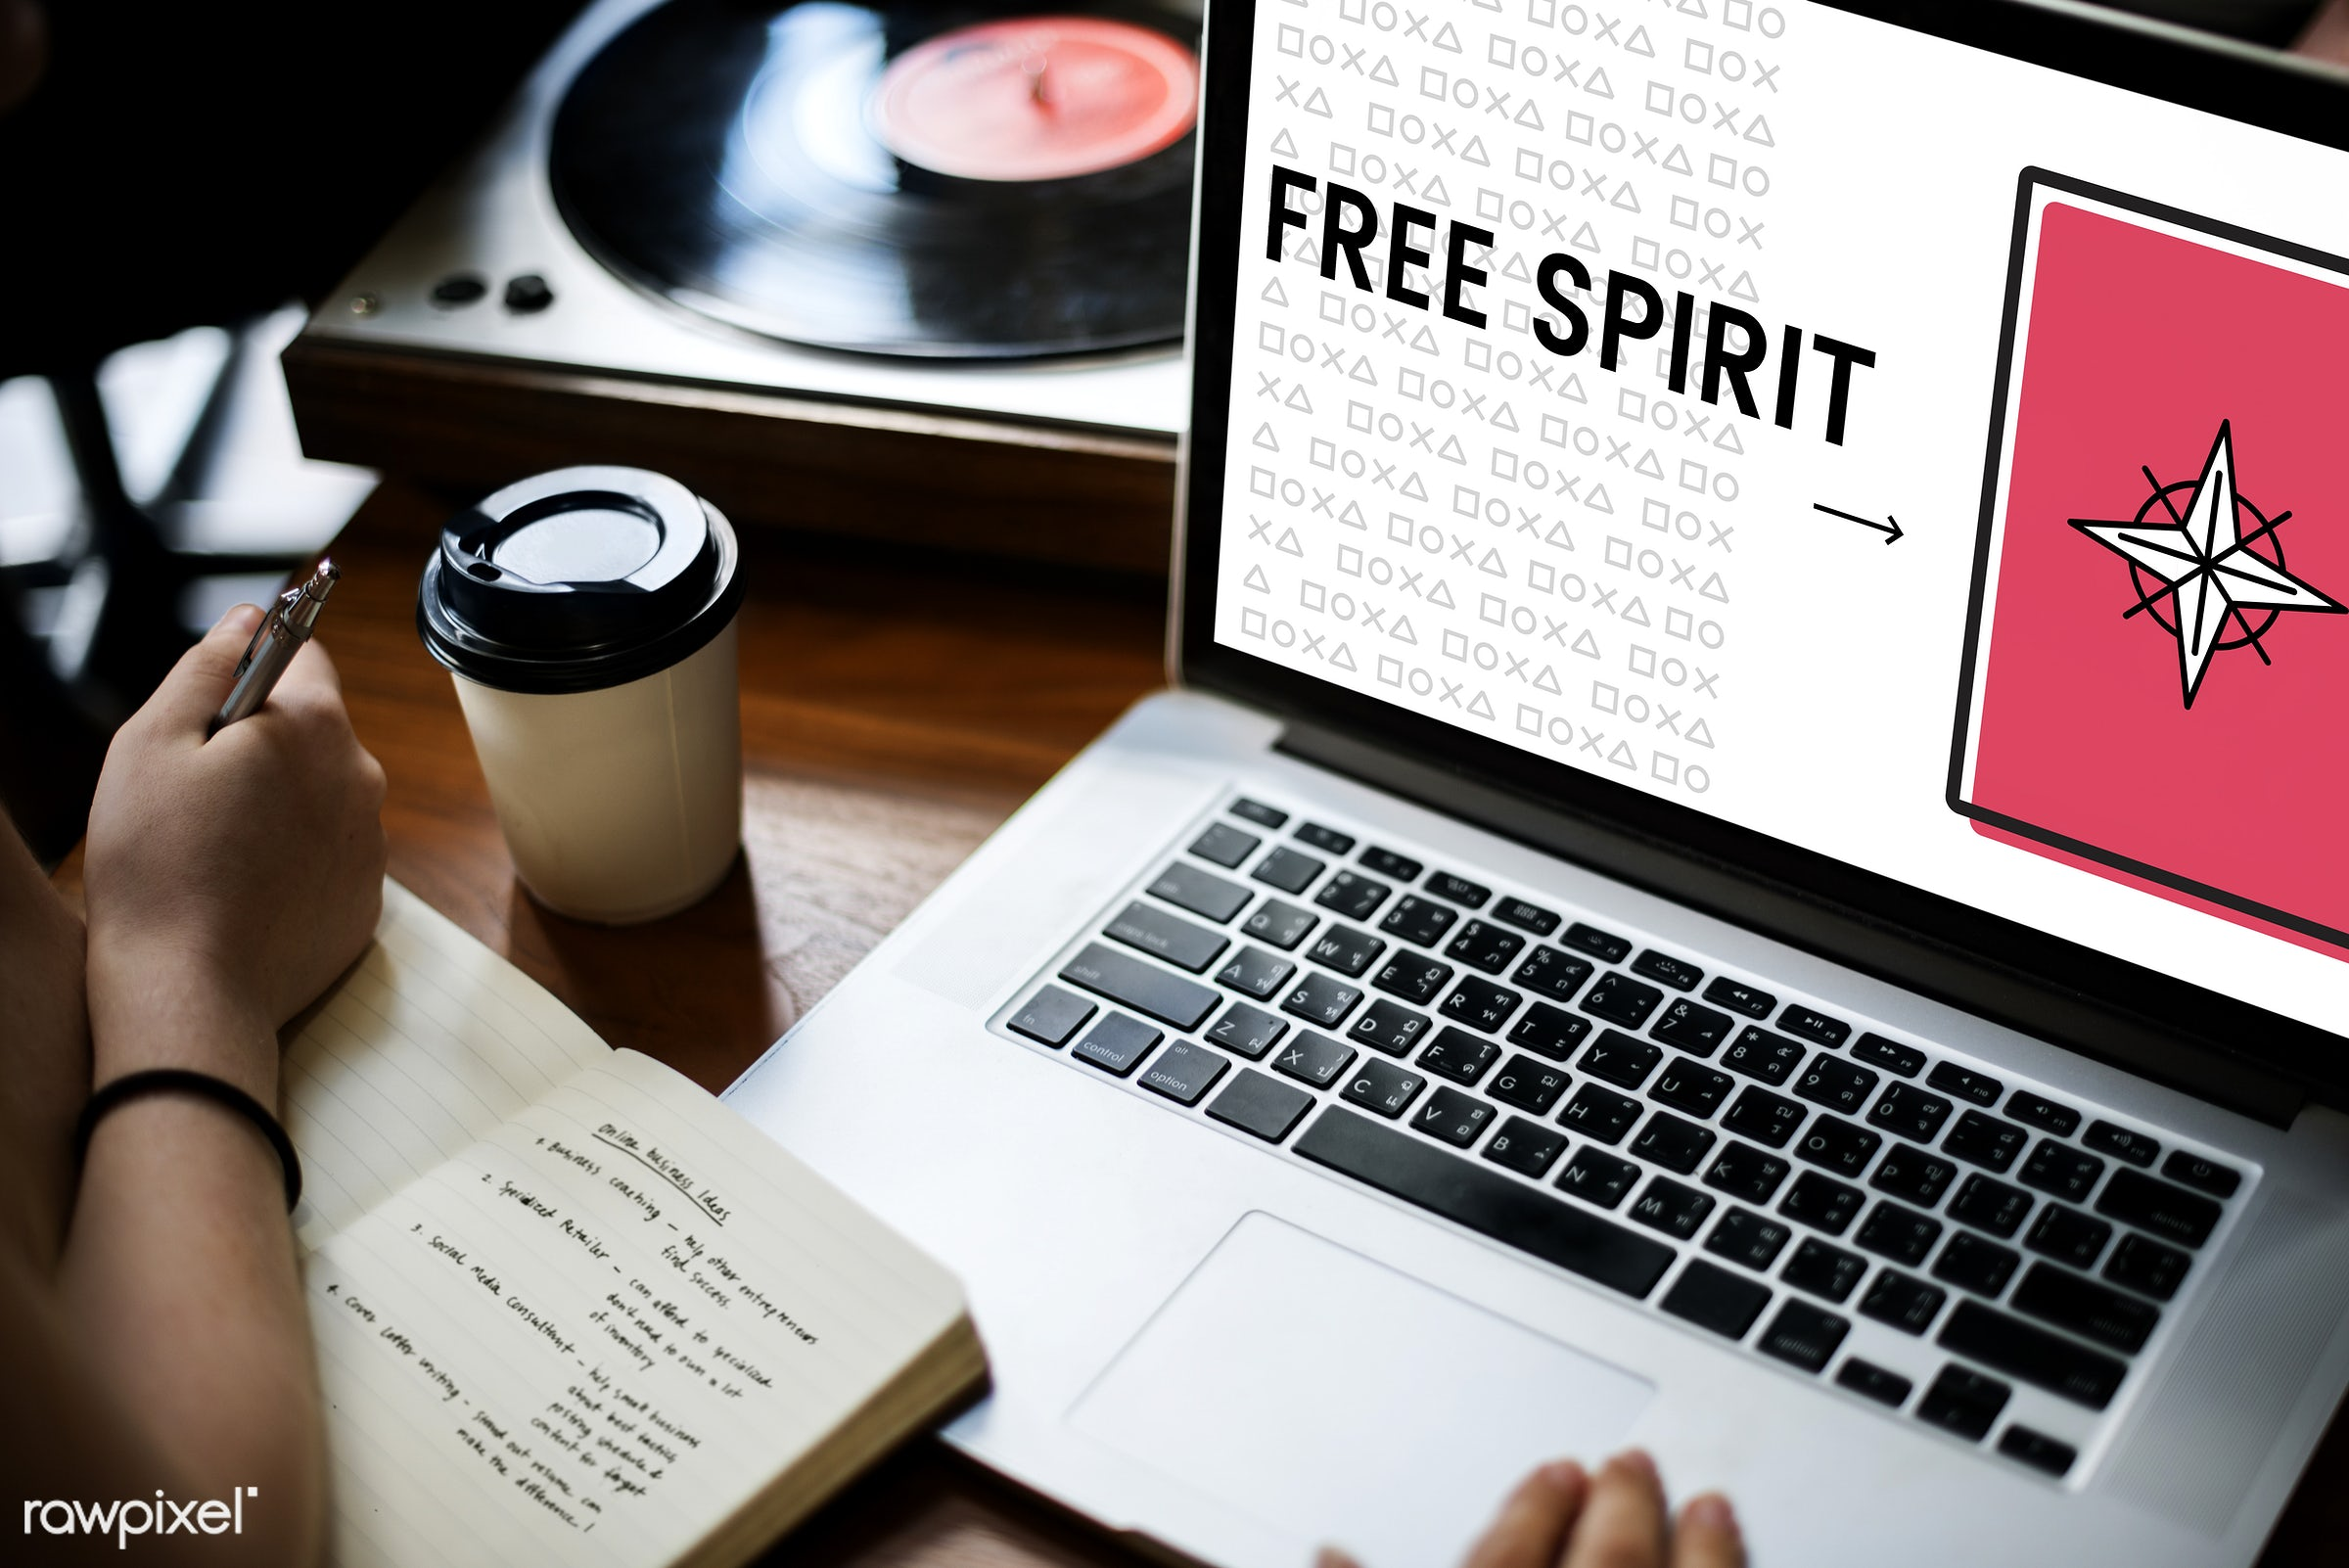 browsing, chill, coffee cup, concept, control, creative, device, digital, digital device, fashion, free spirit, freedom,...